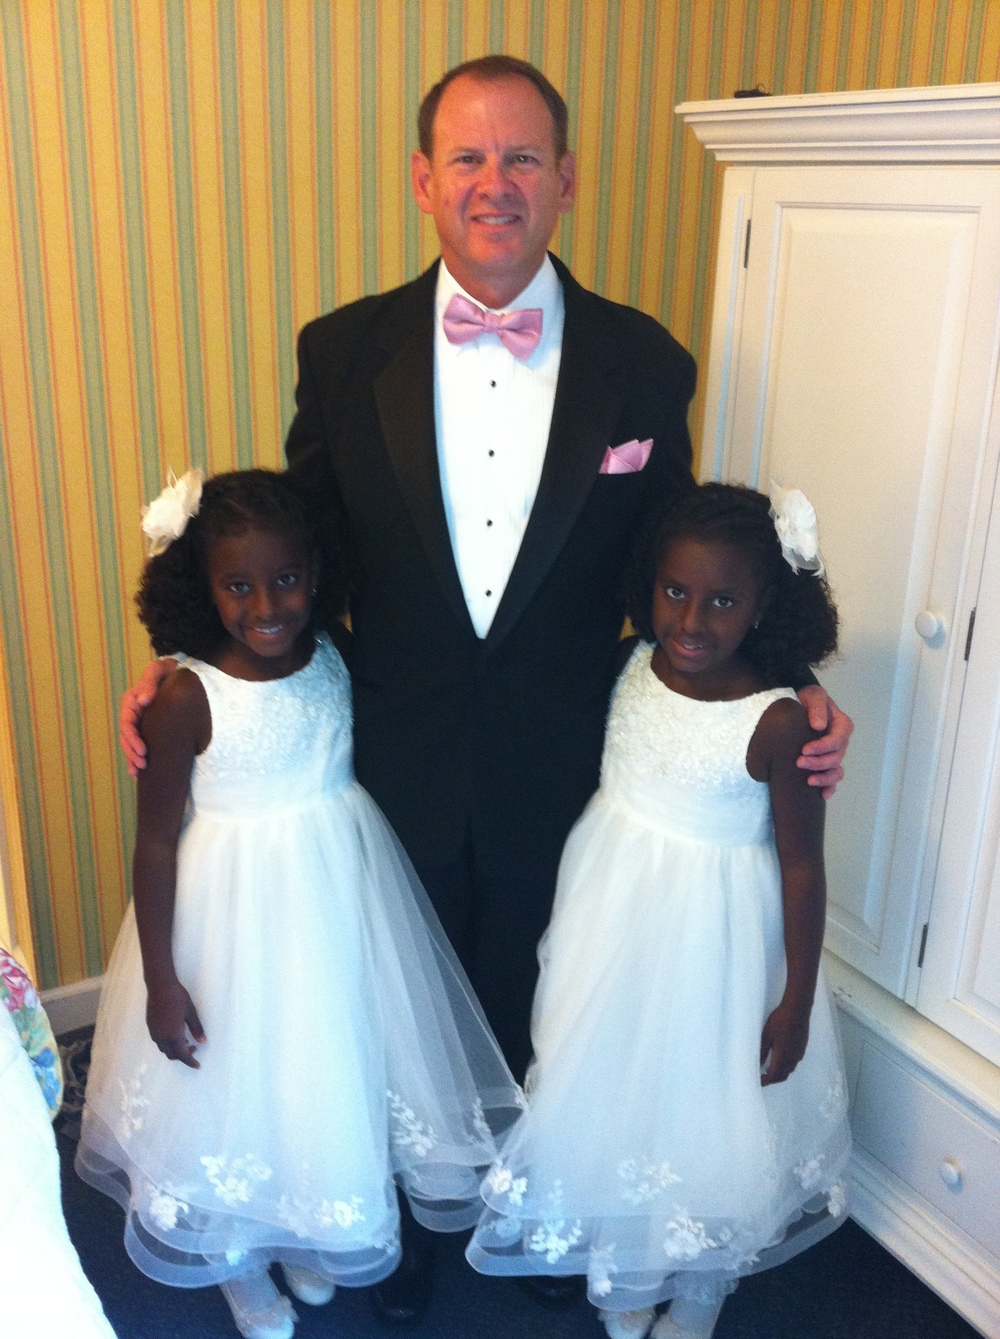 Twins Candace (L) and Sarah (R) in the summer of 2013 when they were flower girls.